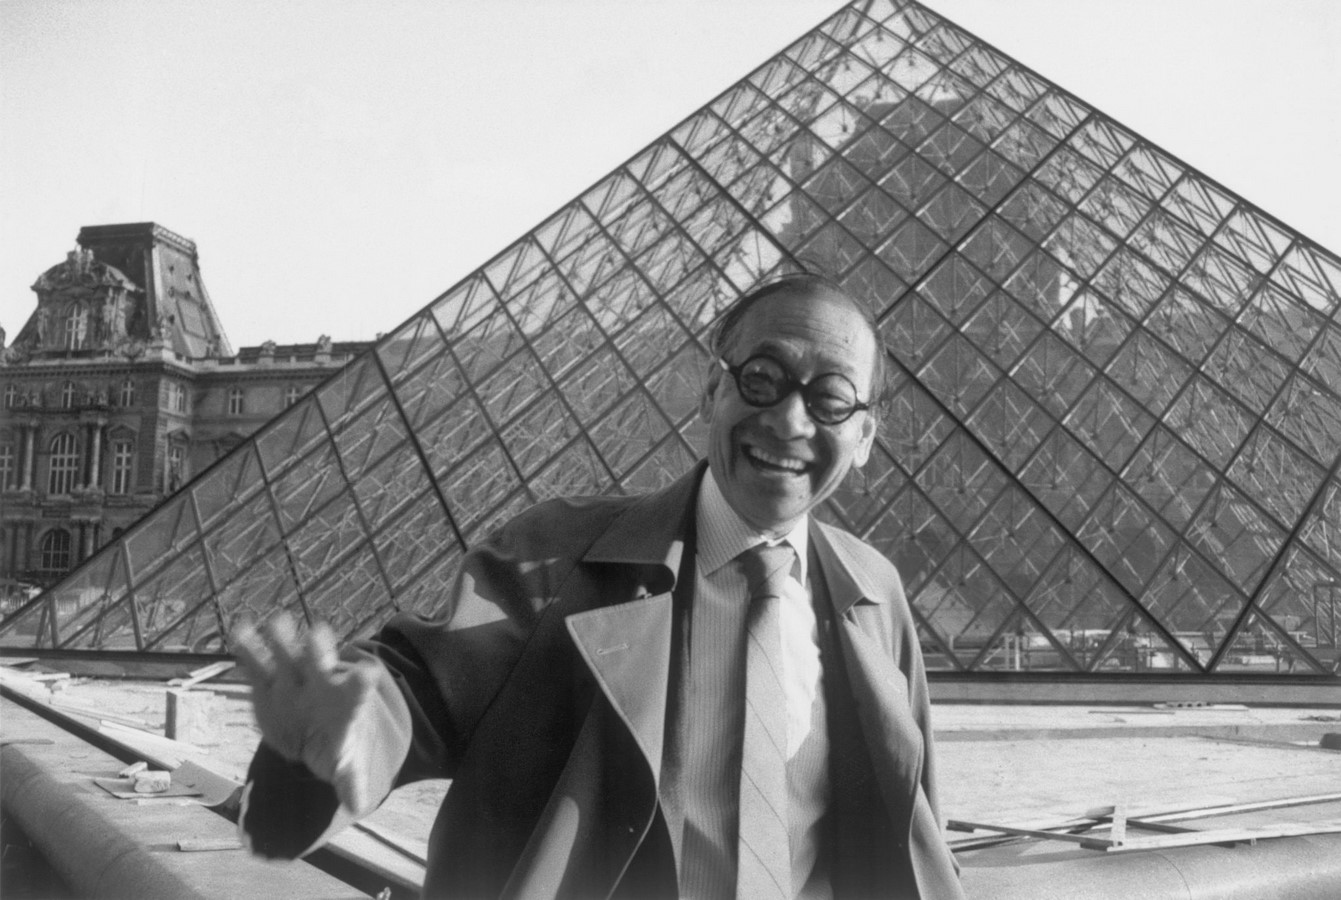 10 Things you did not know about Louvre Pyramid by I.M. Pei - sHEET1